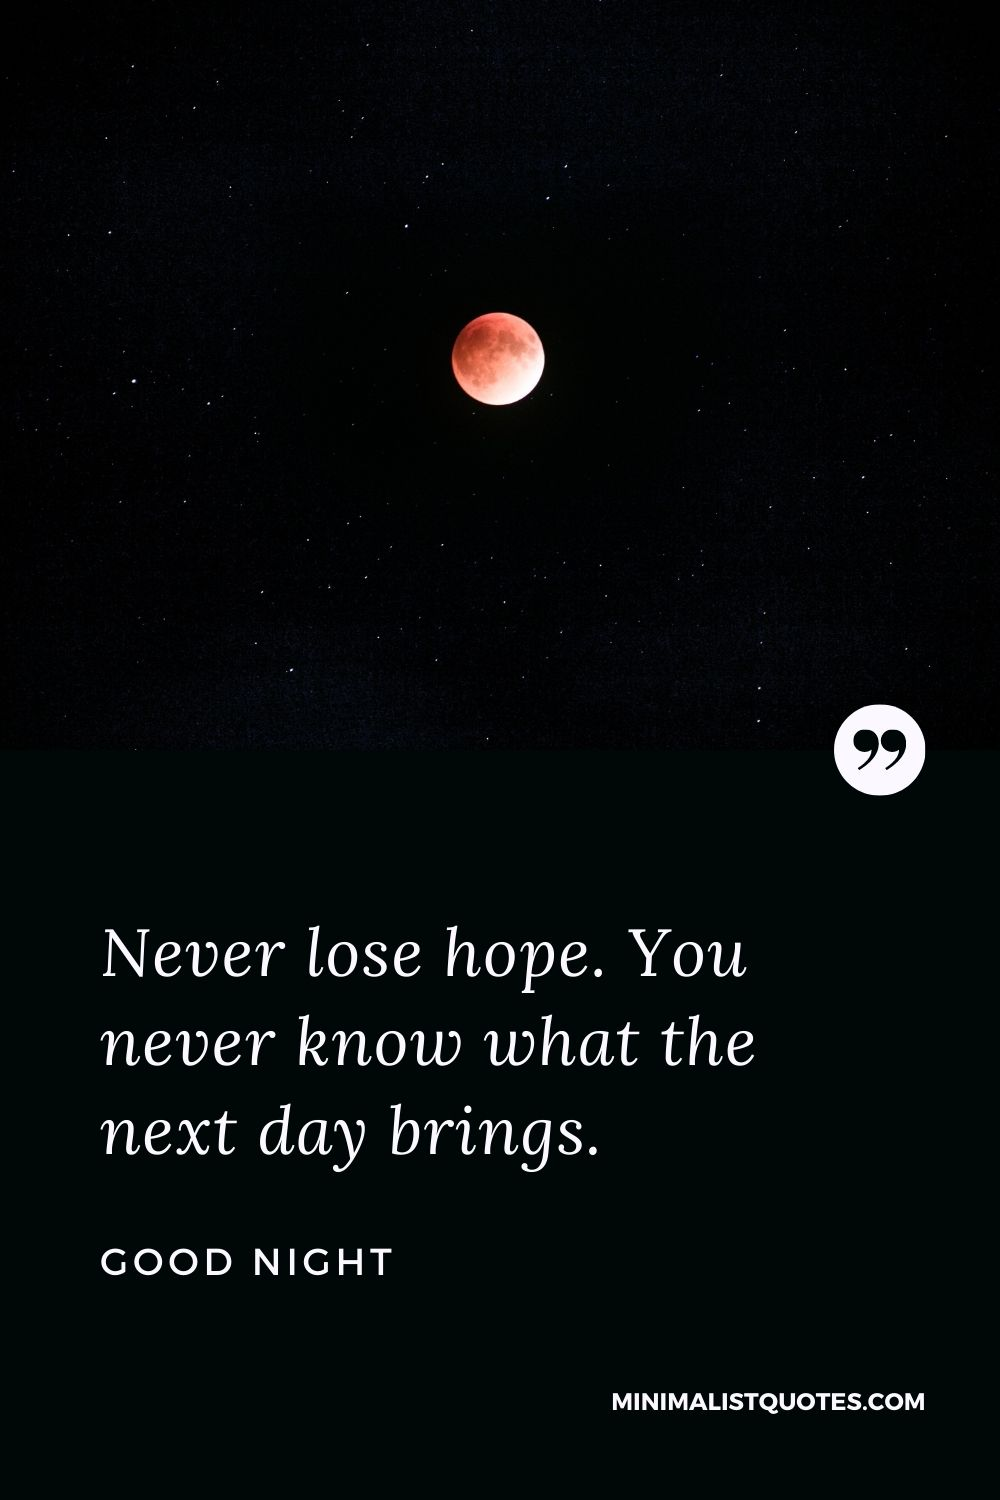 Good Night Wishes - Never lose hope. You never know what the next day brings.